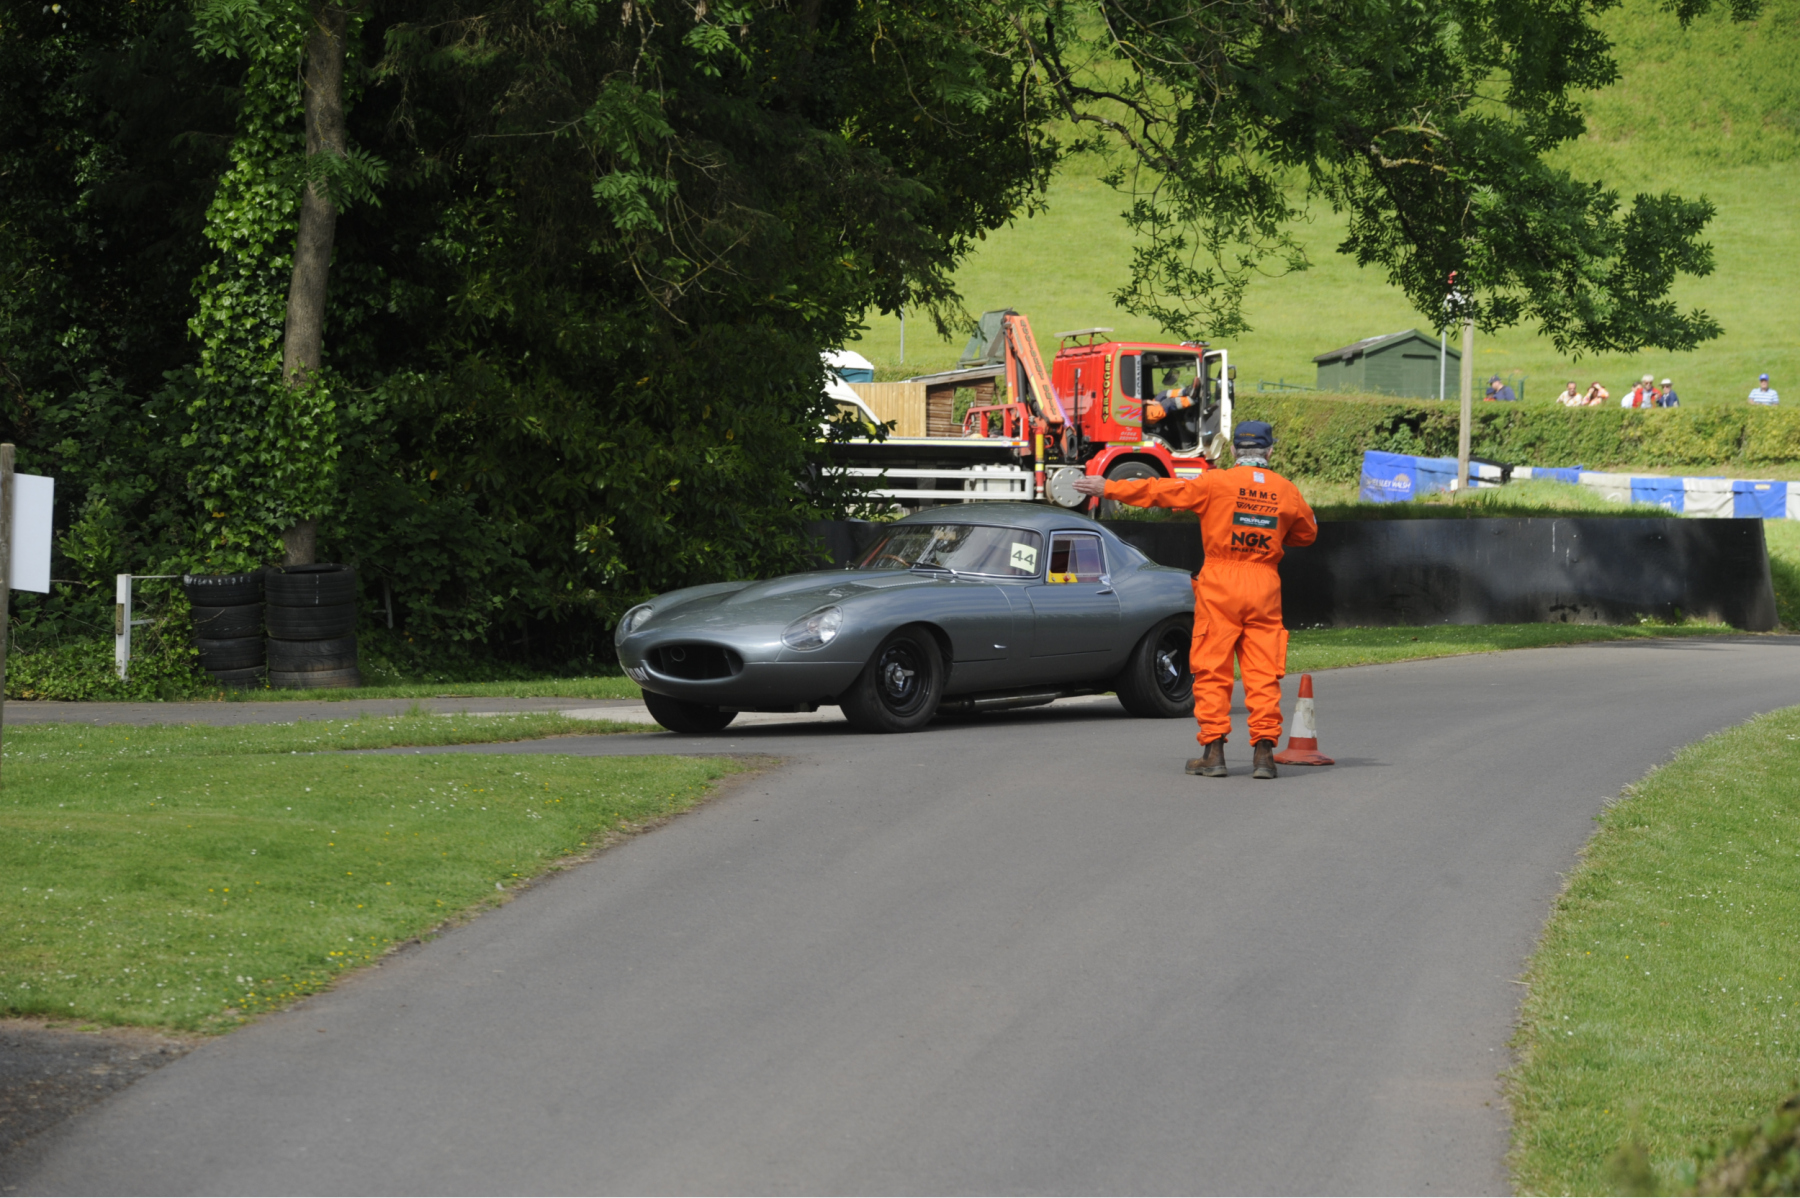 E-type-60-Saturday-photo-by-Abigail-Humphries-154